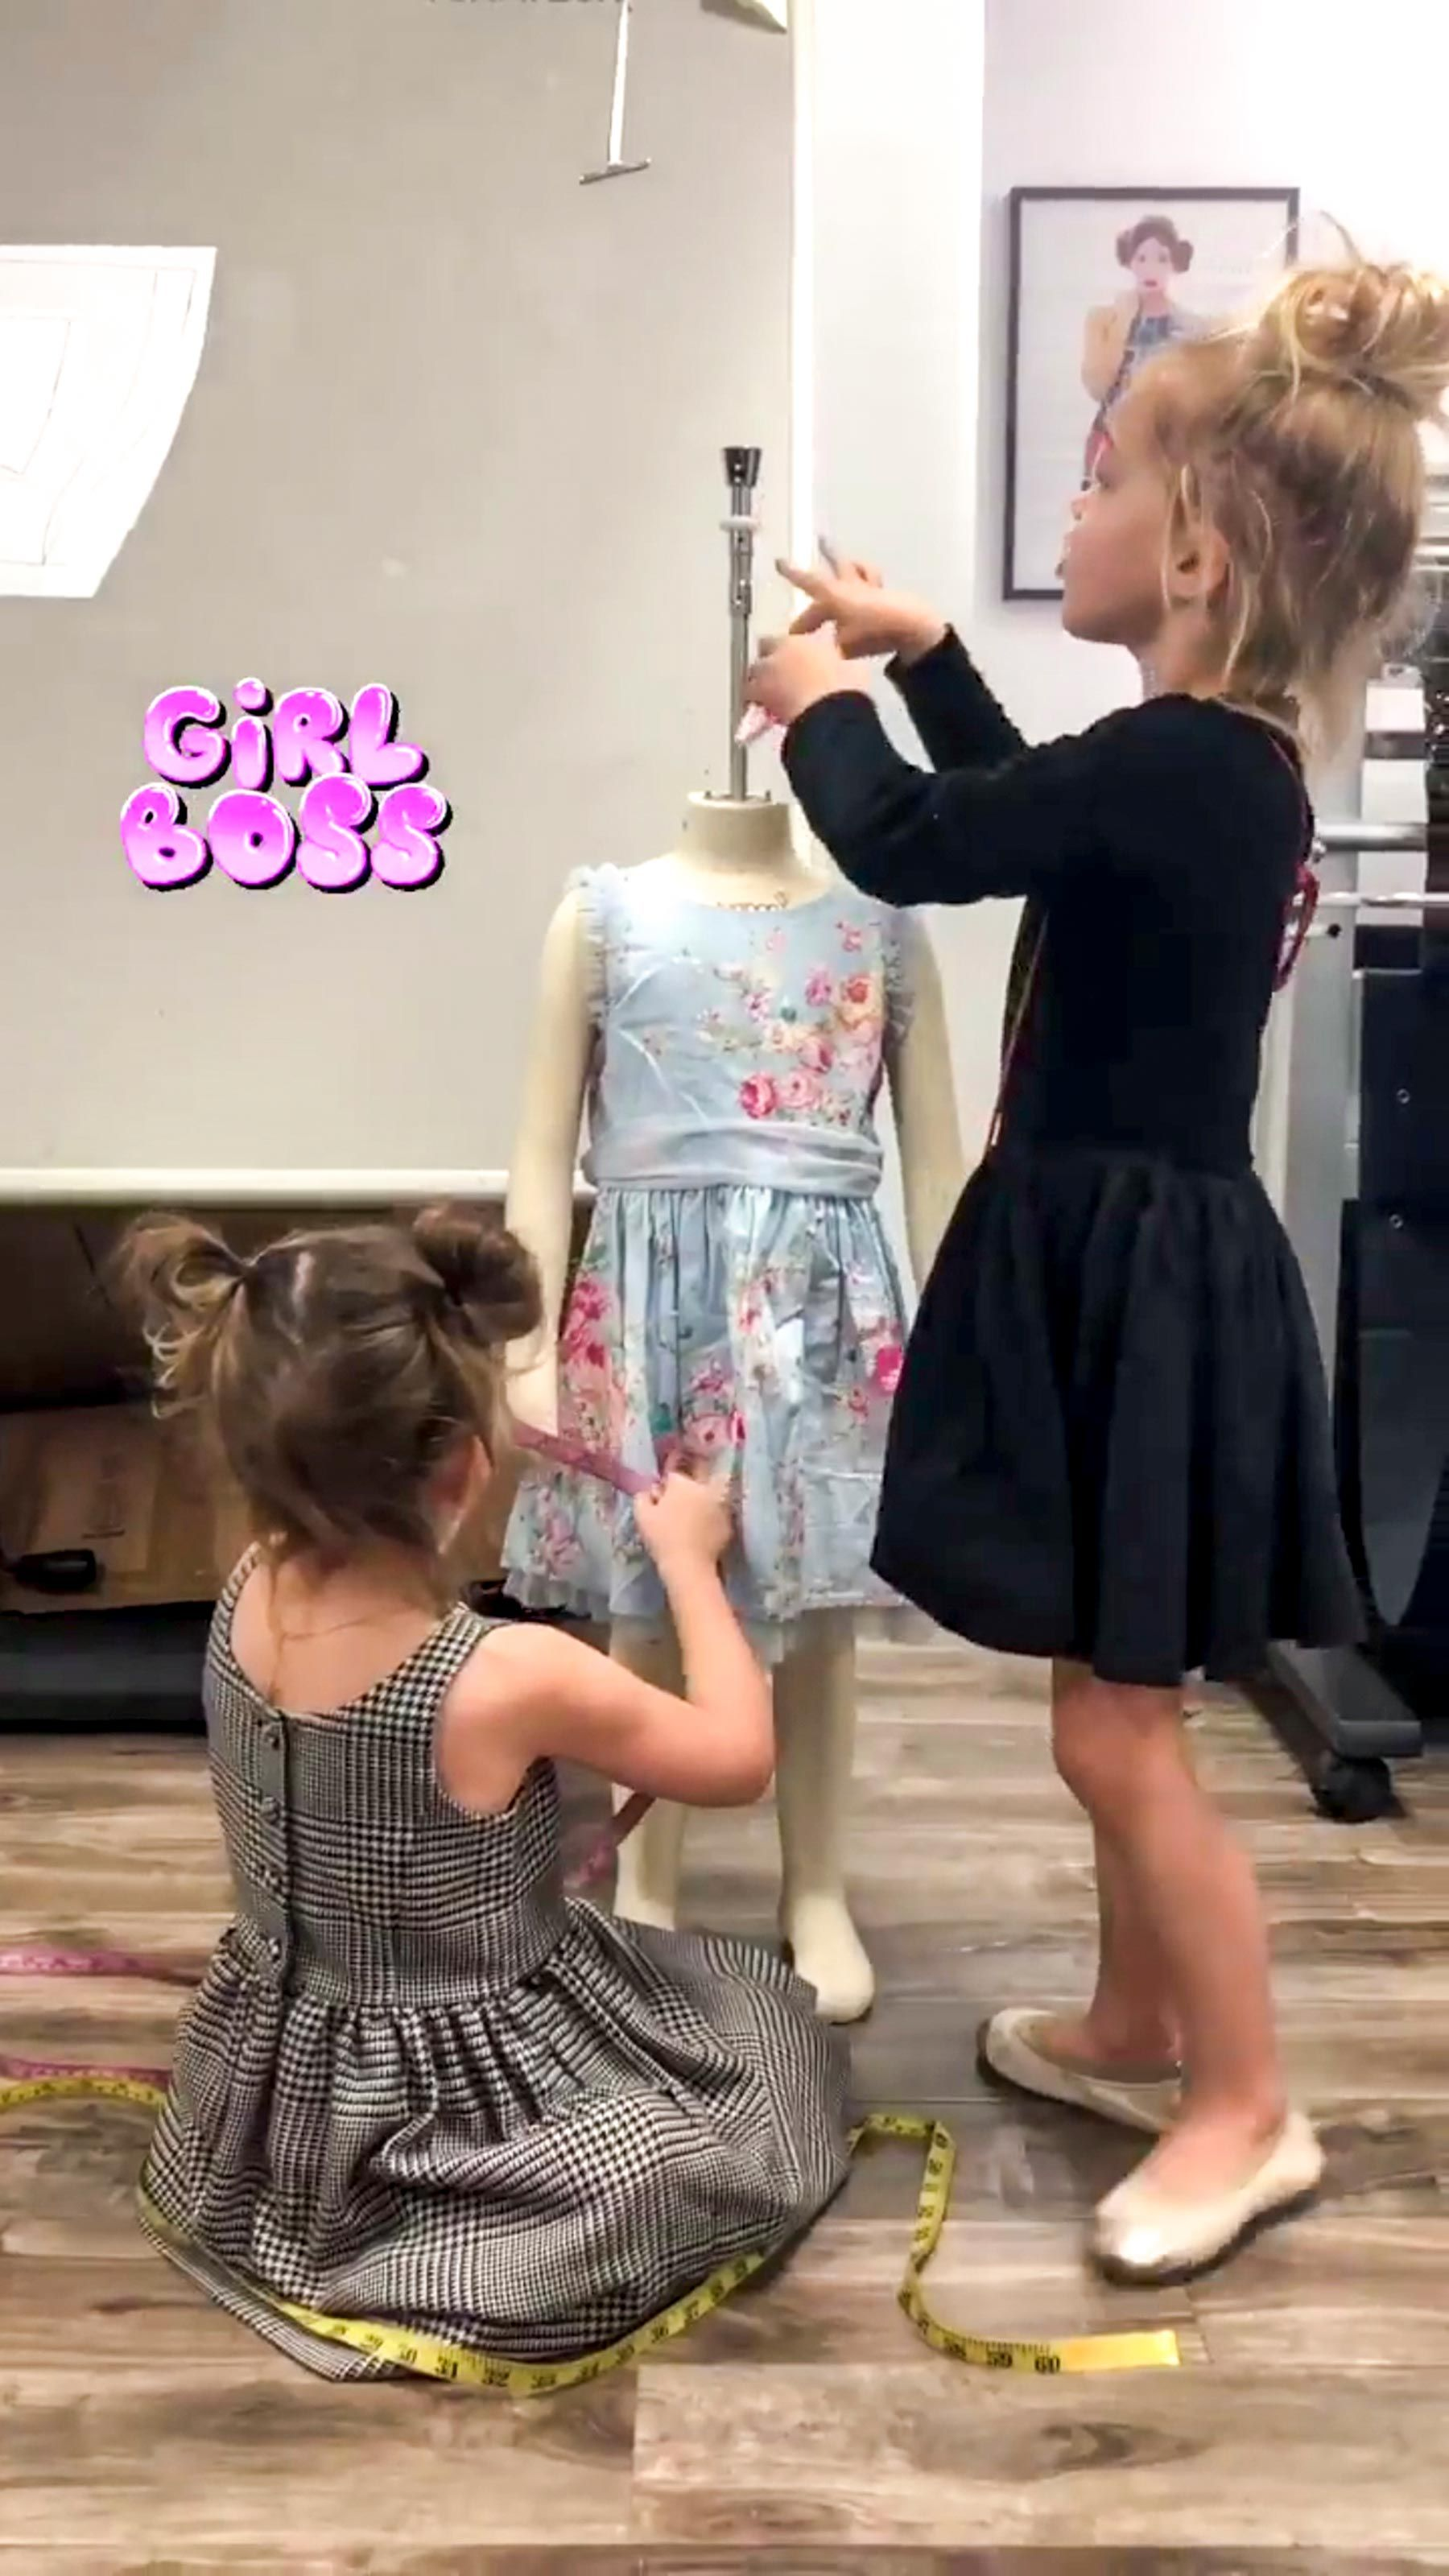 Twins Mila And Emma Stauffer 4 Were So Excited To Design Their Own Line Sold At Target Midi Dress Sleeveless Plain Dress Casual Short Dresses Casual [ 3200 x 1800 Pixel ]